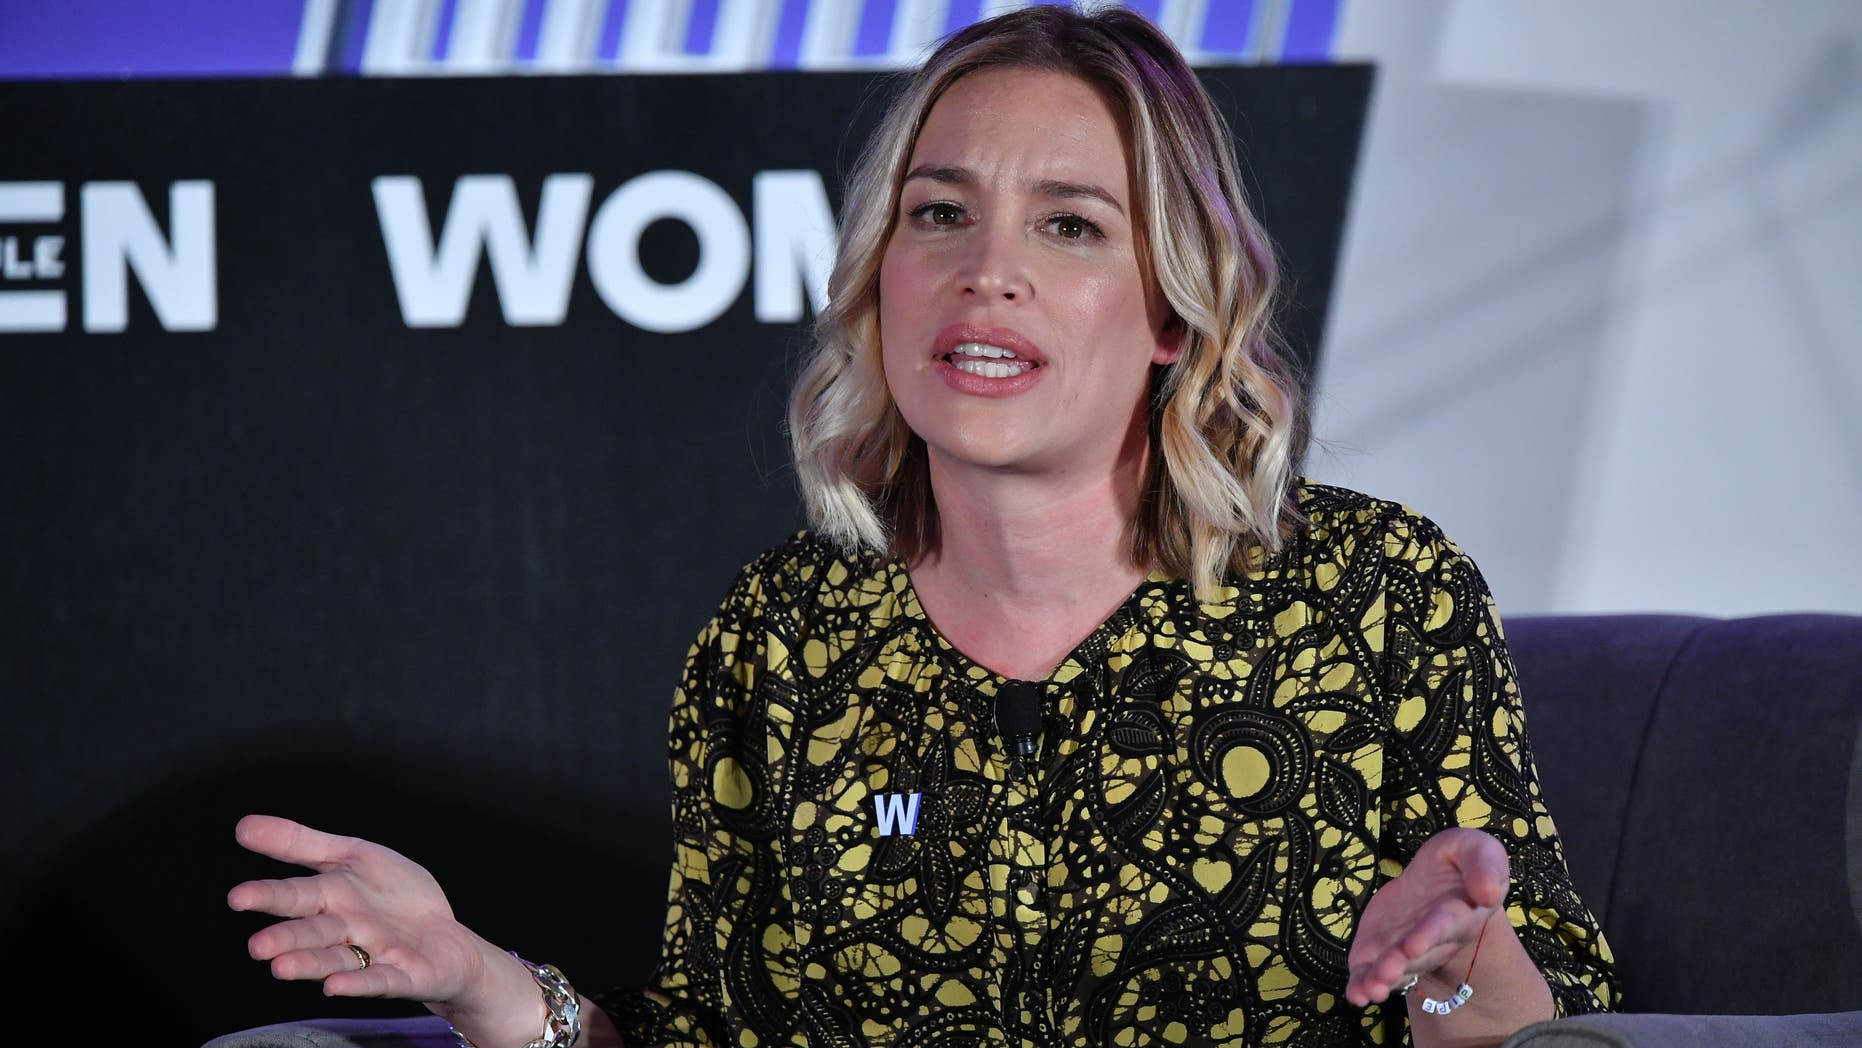 Actress Piper Perabo speaks at Politico's 6th Annual Women Rule Summit in Washington, DC on December 11, 2018.